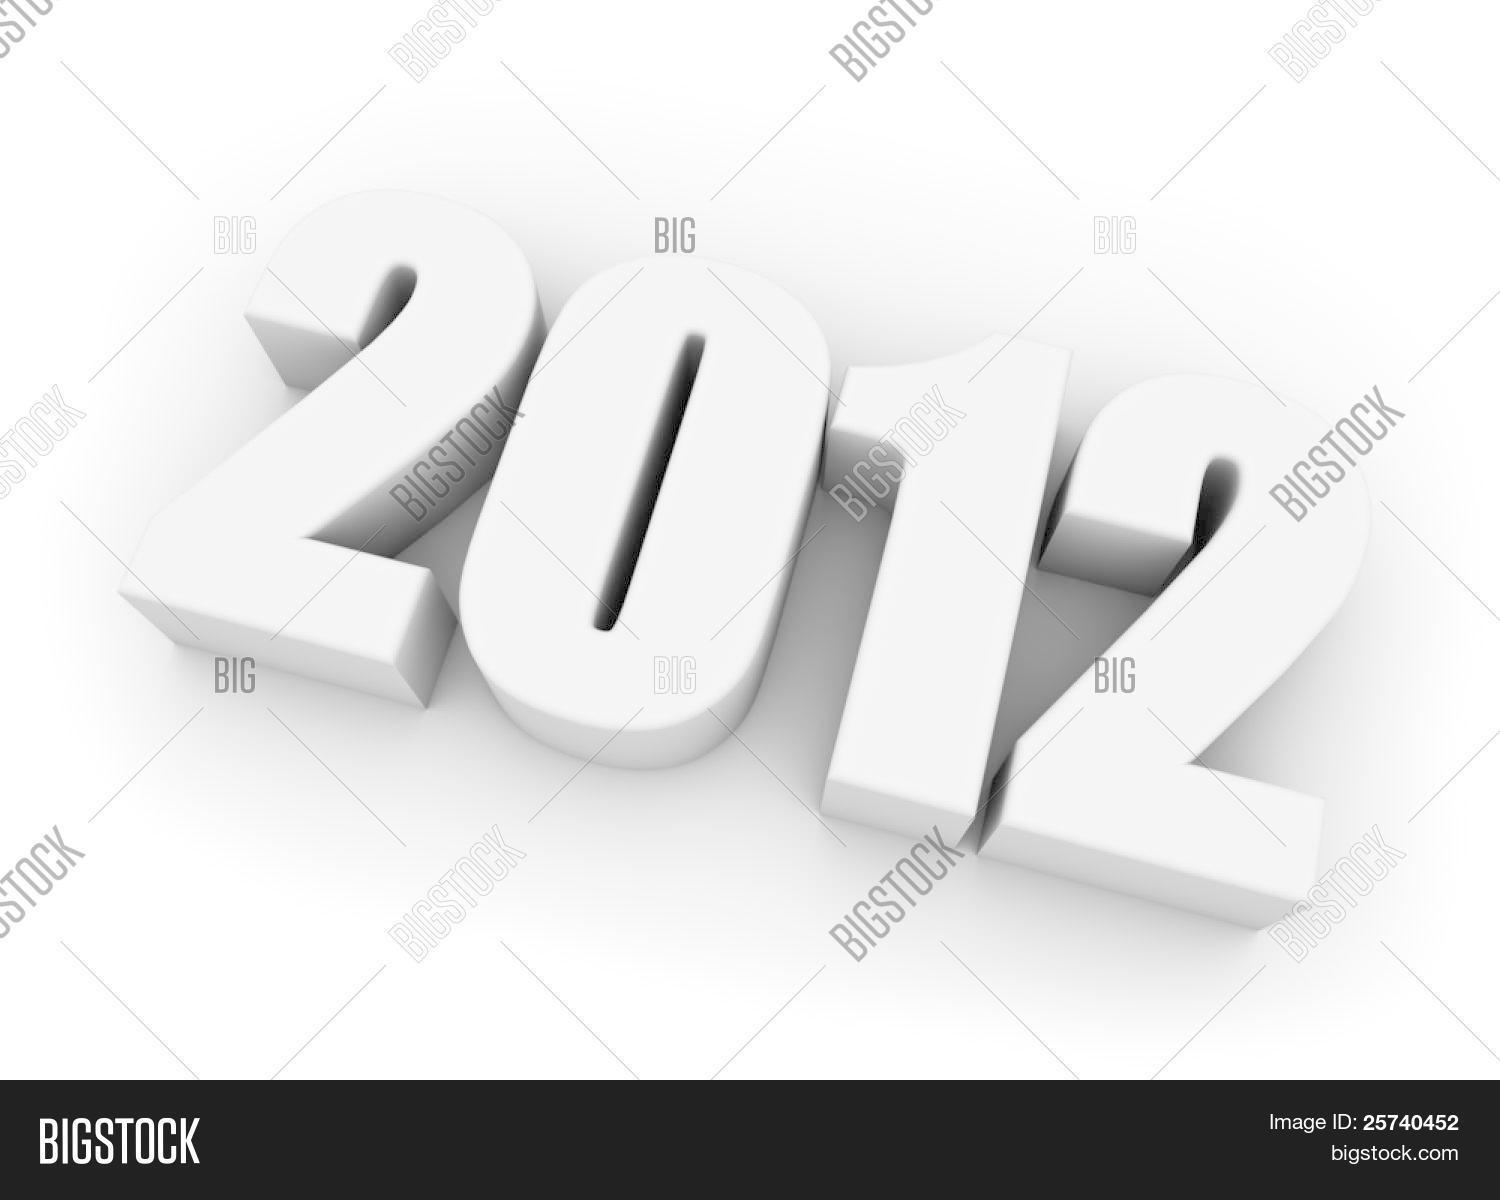 3d,2012,2012 calendar,2012 year,abstract,background,calendar,card,celebration,cgi,christmas,concept,date,design,eve,event,extruded,figures,graphic,happy,happy new year,holiday,illustration,isolated,light,merry,merry christmas and happy new year,monotone,new,new-year,new year,new year background,new year celebration,new years,new years eve,next,number,occasion,perspective,poster,render,shadow,surface,symbol,text,wallpaper,white,xmas,year